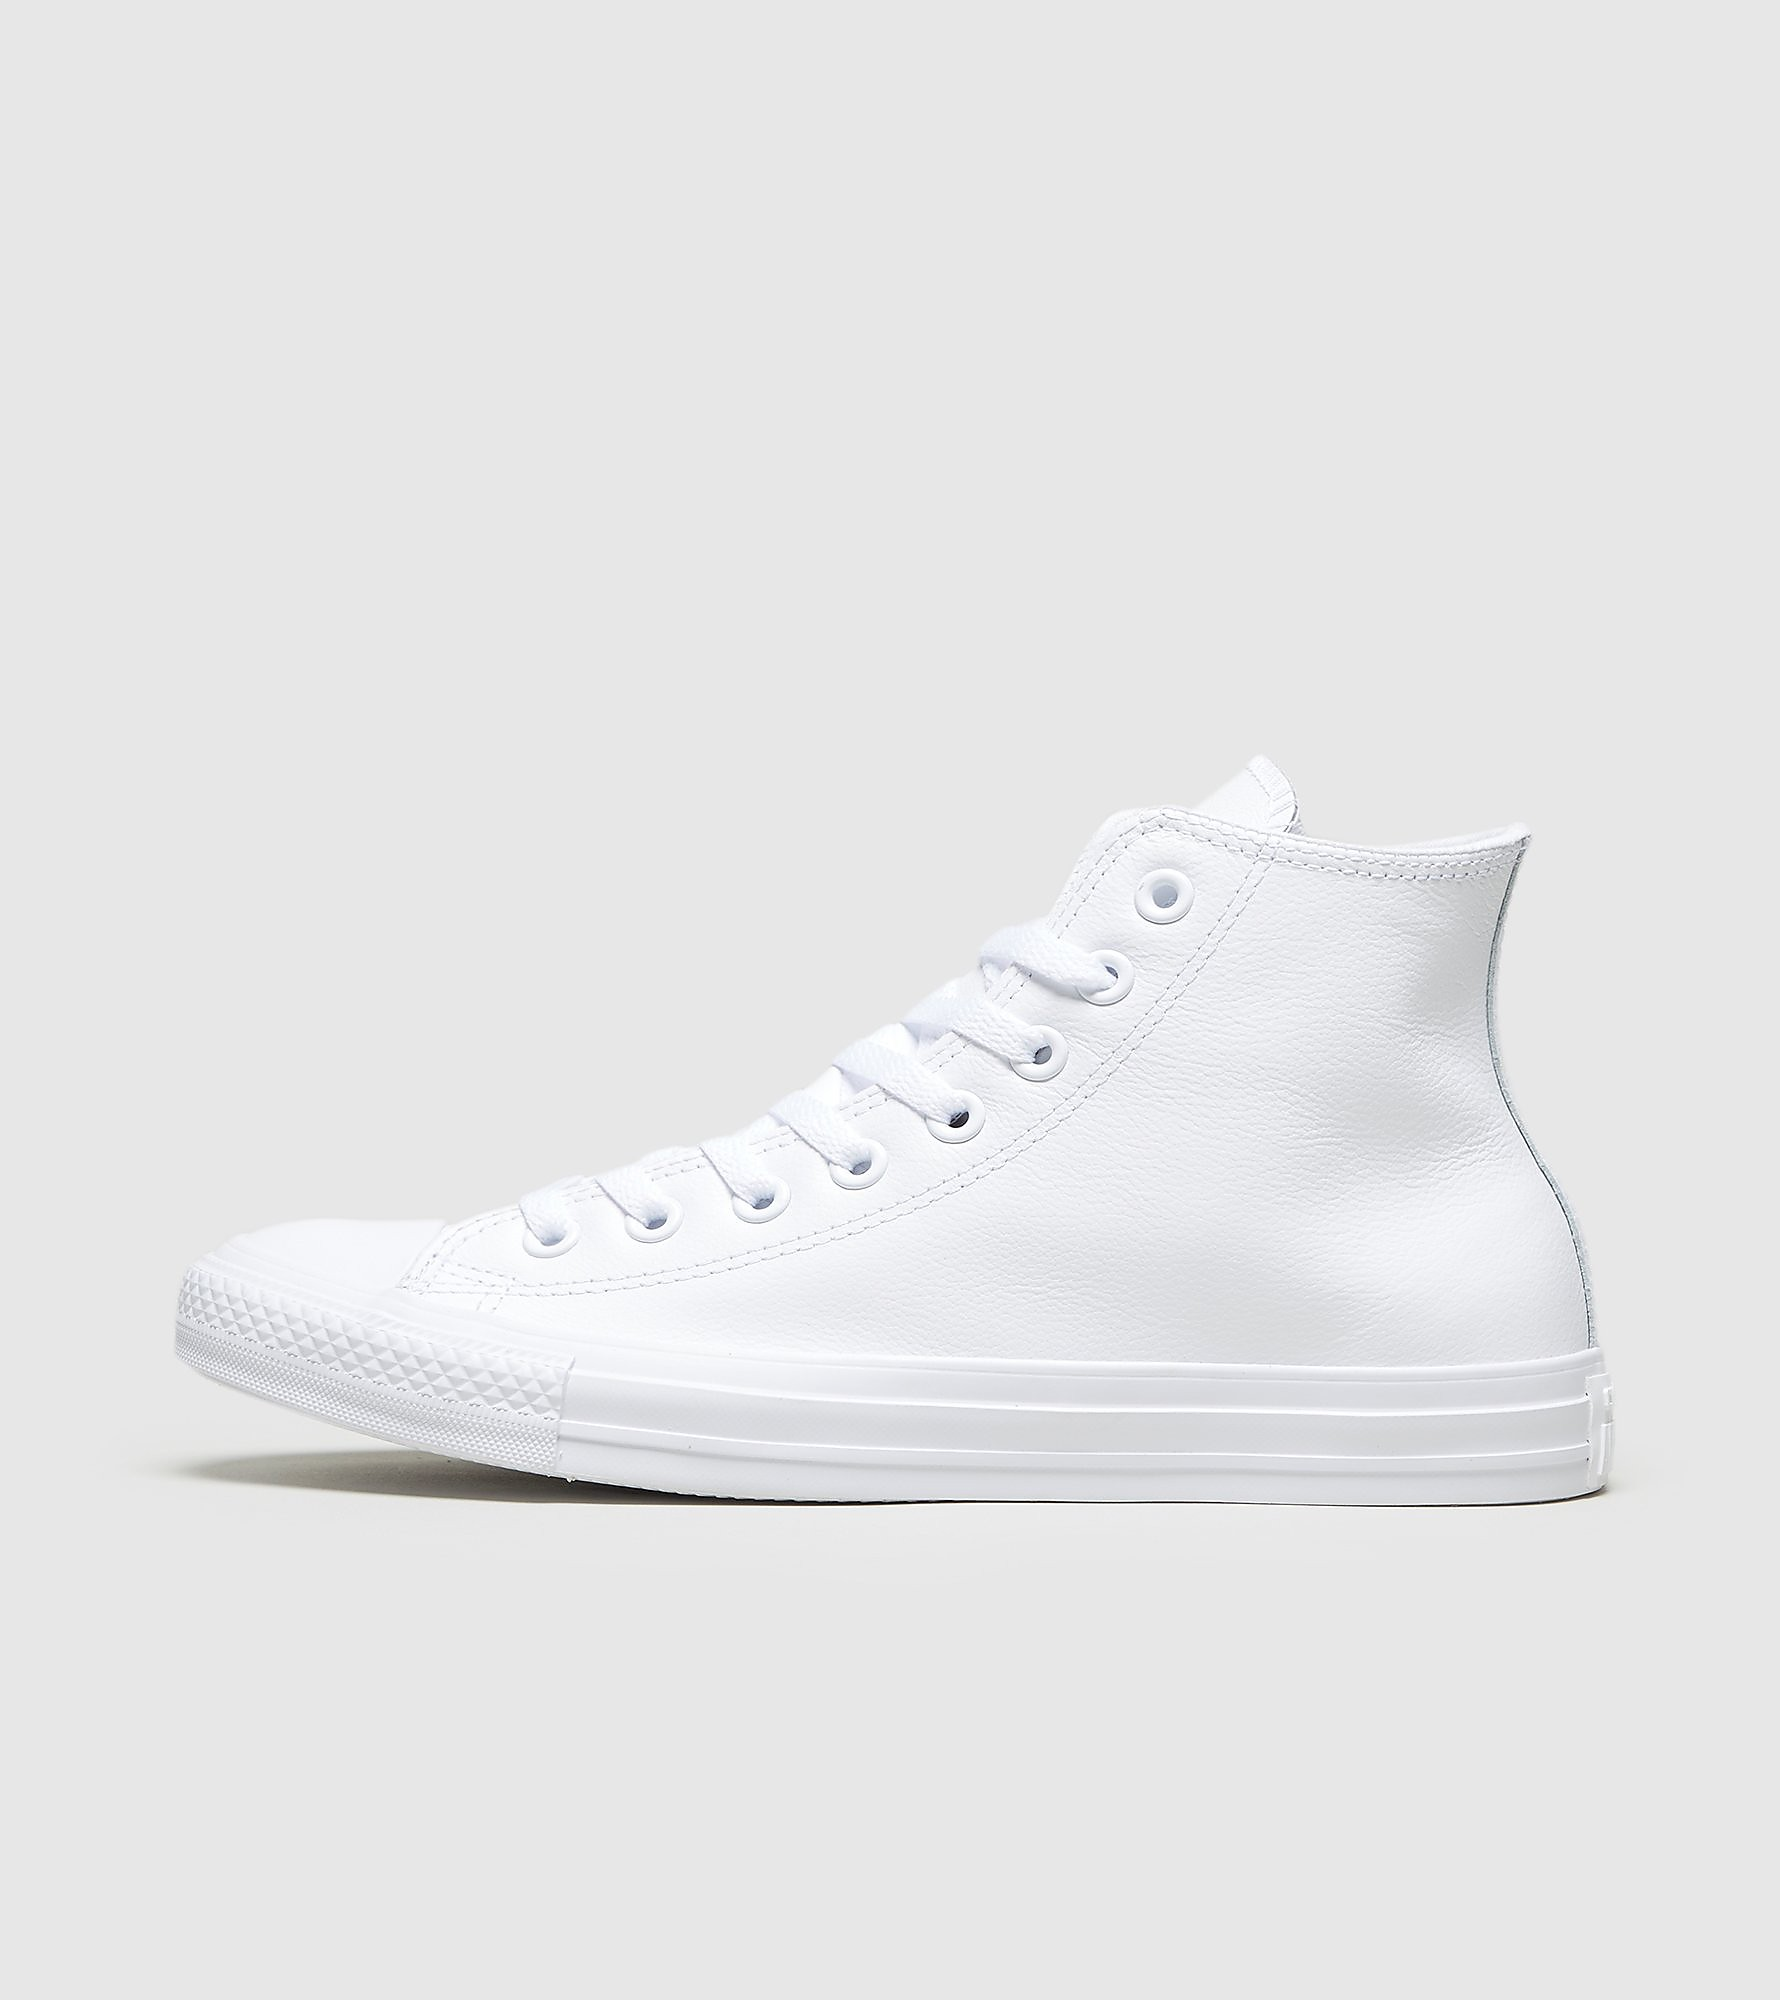 Converse Chuck Taylor All Star Leather Mono